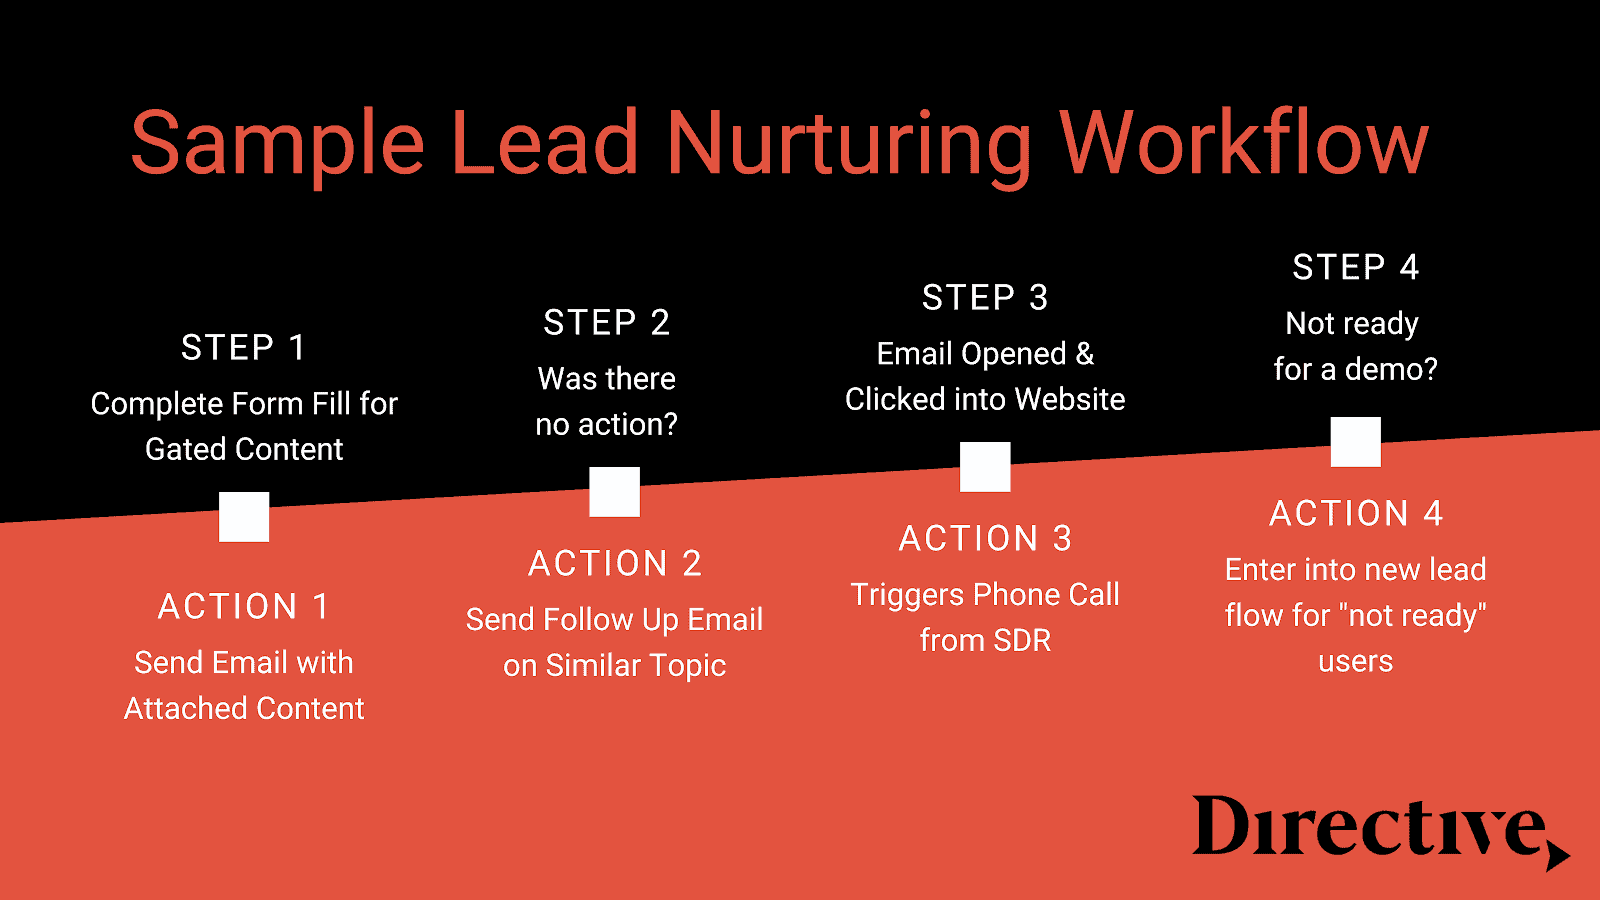 Sample lead nurturing workflow that helps in audience building.